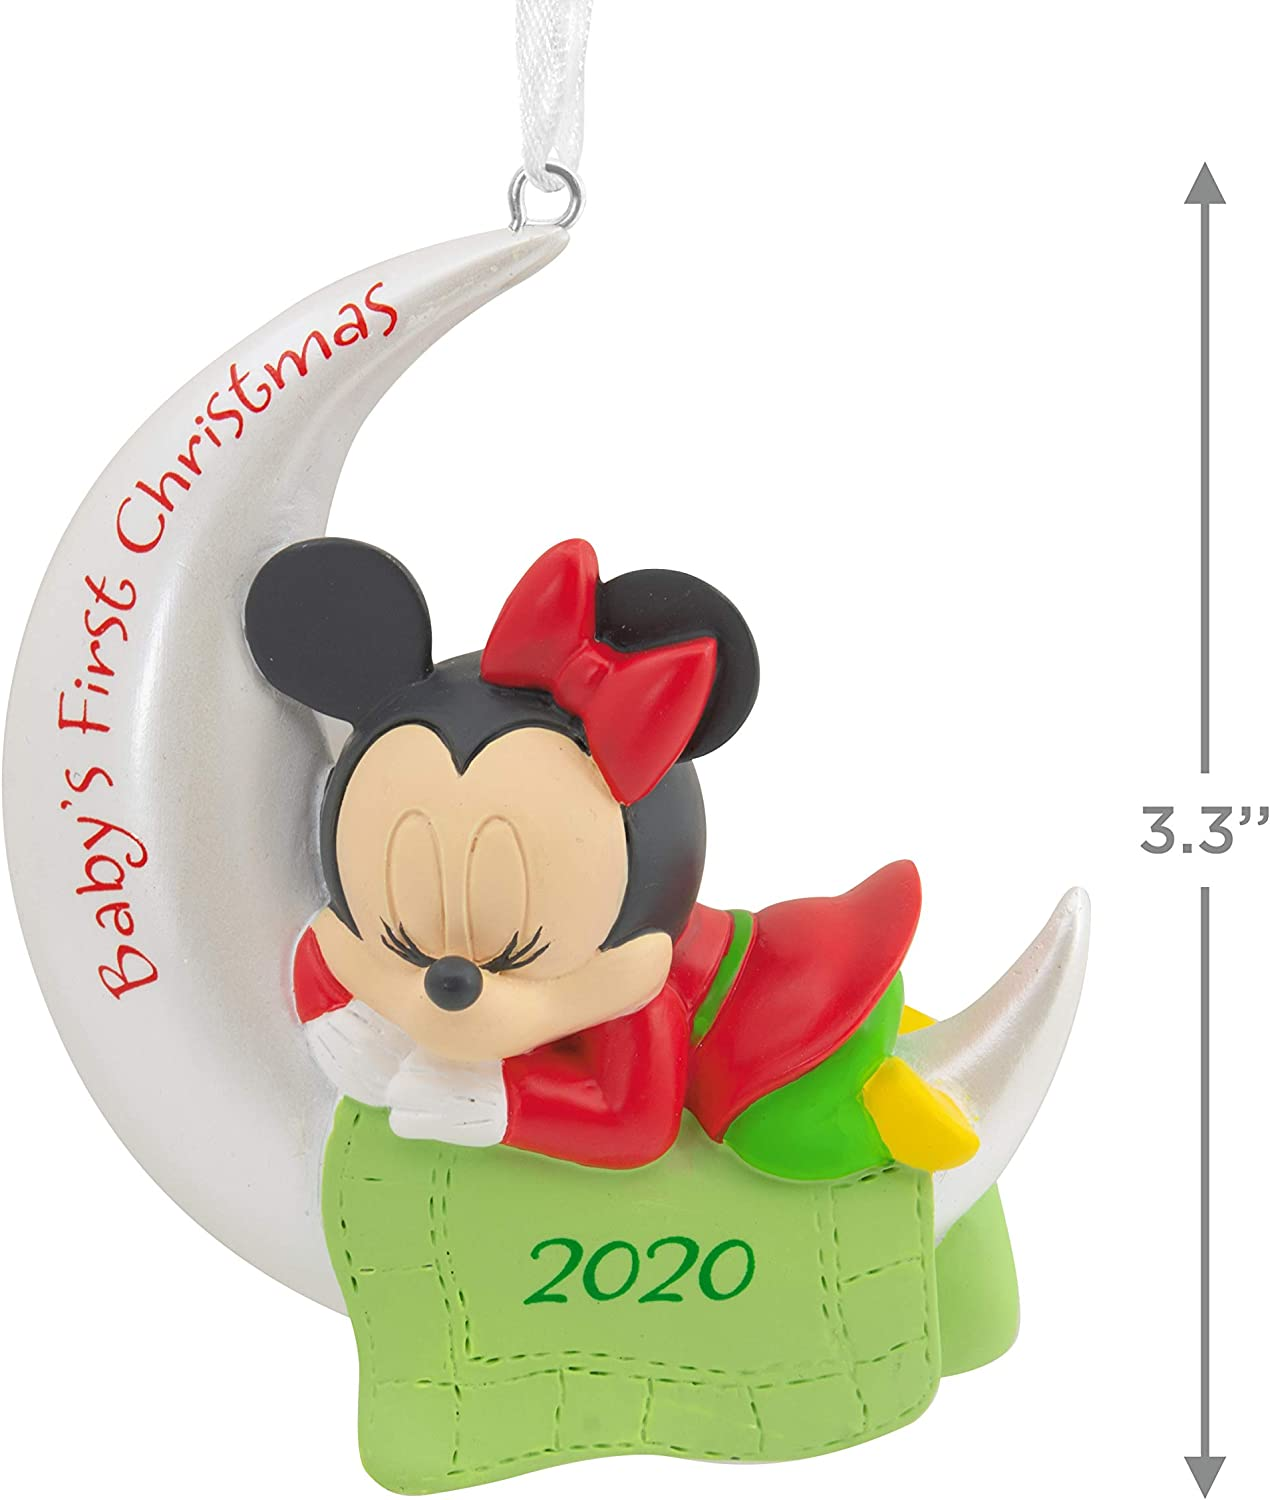 Babys First Christmas Ornament Disney 2020 Amazon.com: Hallmark Ornament 2020 Year Dated, Disney Minnie Mouse